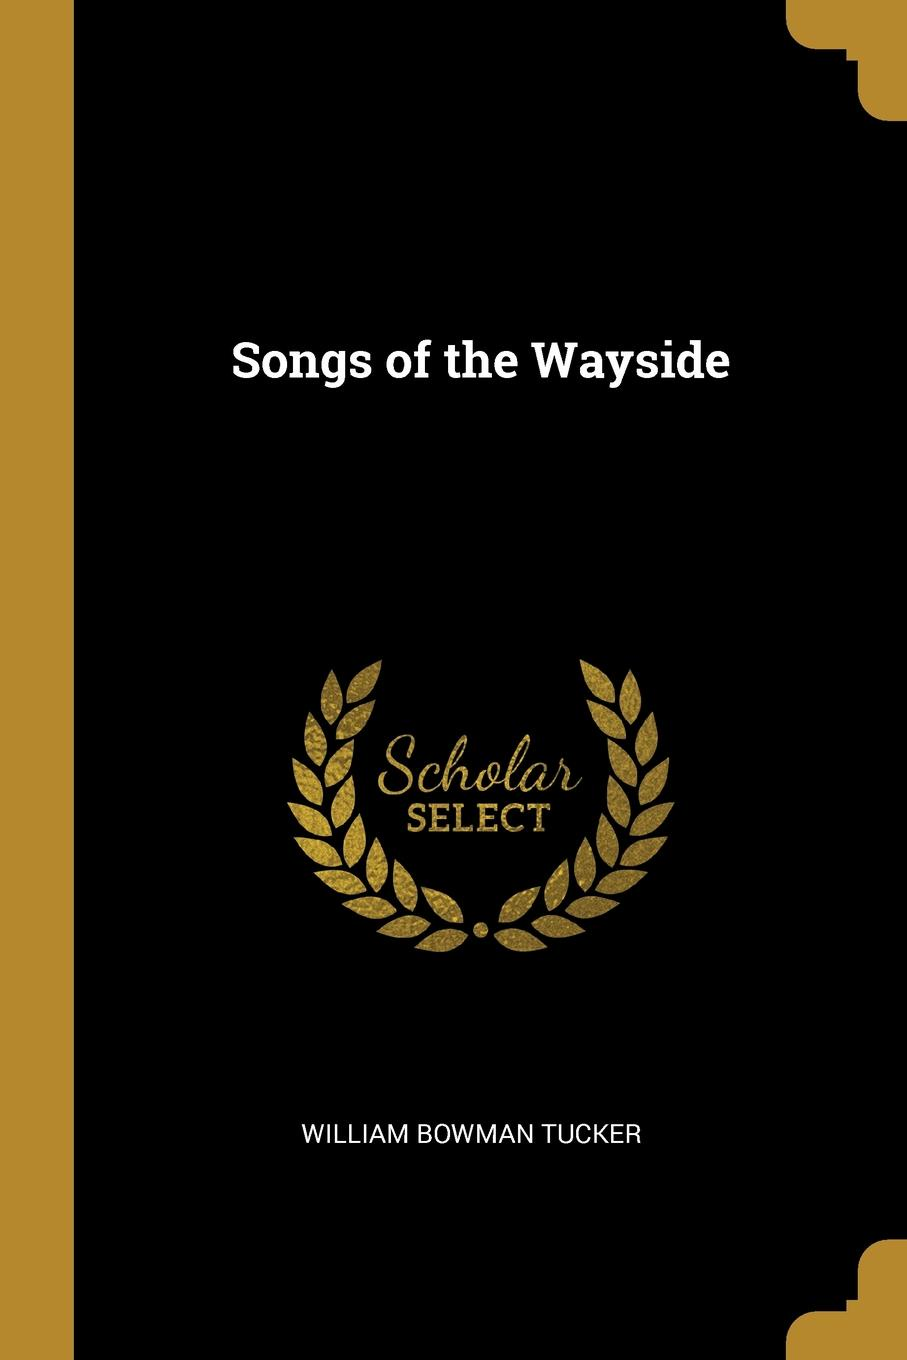 William Bowman Tucker. Songs of the Wayside